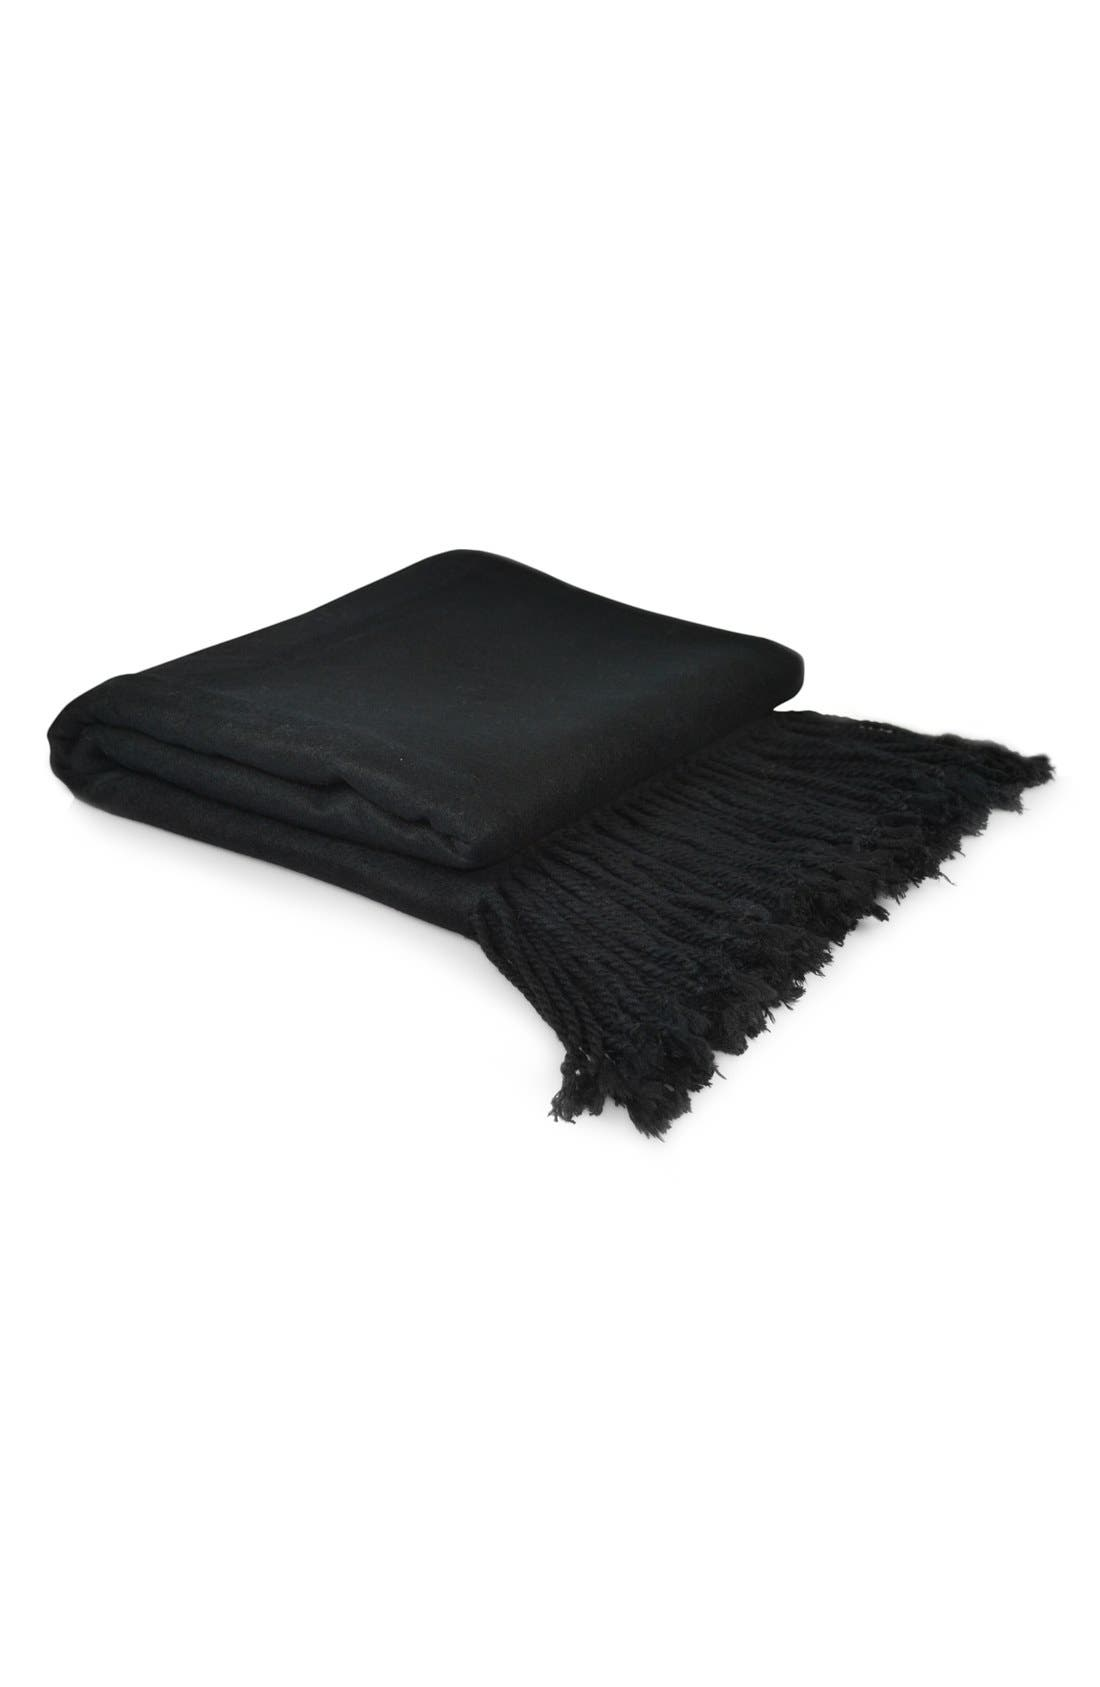 Alternate Image 1 Selected - Indigo 7 Fringe Velvet Throw